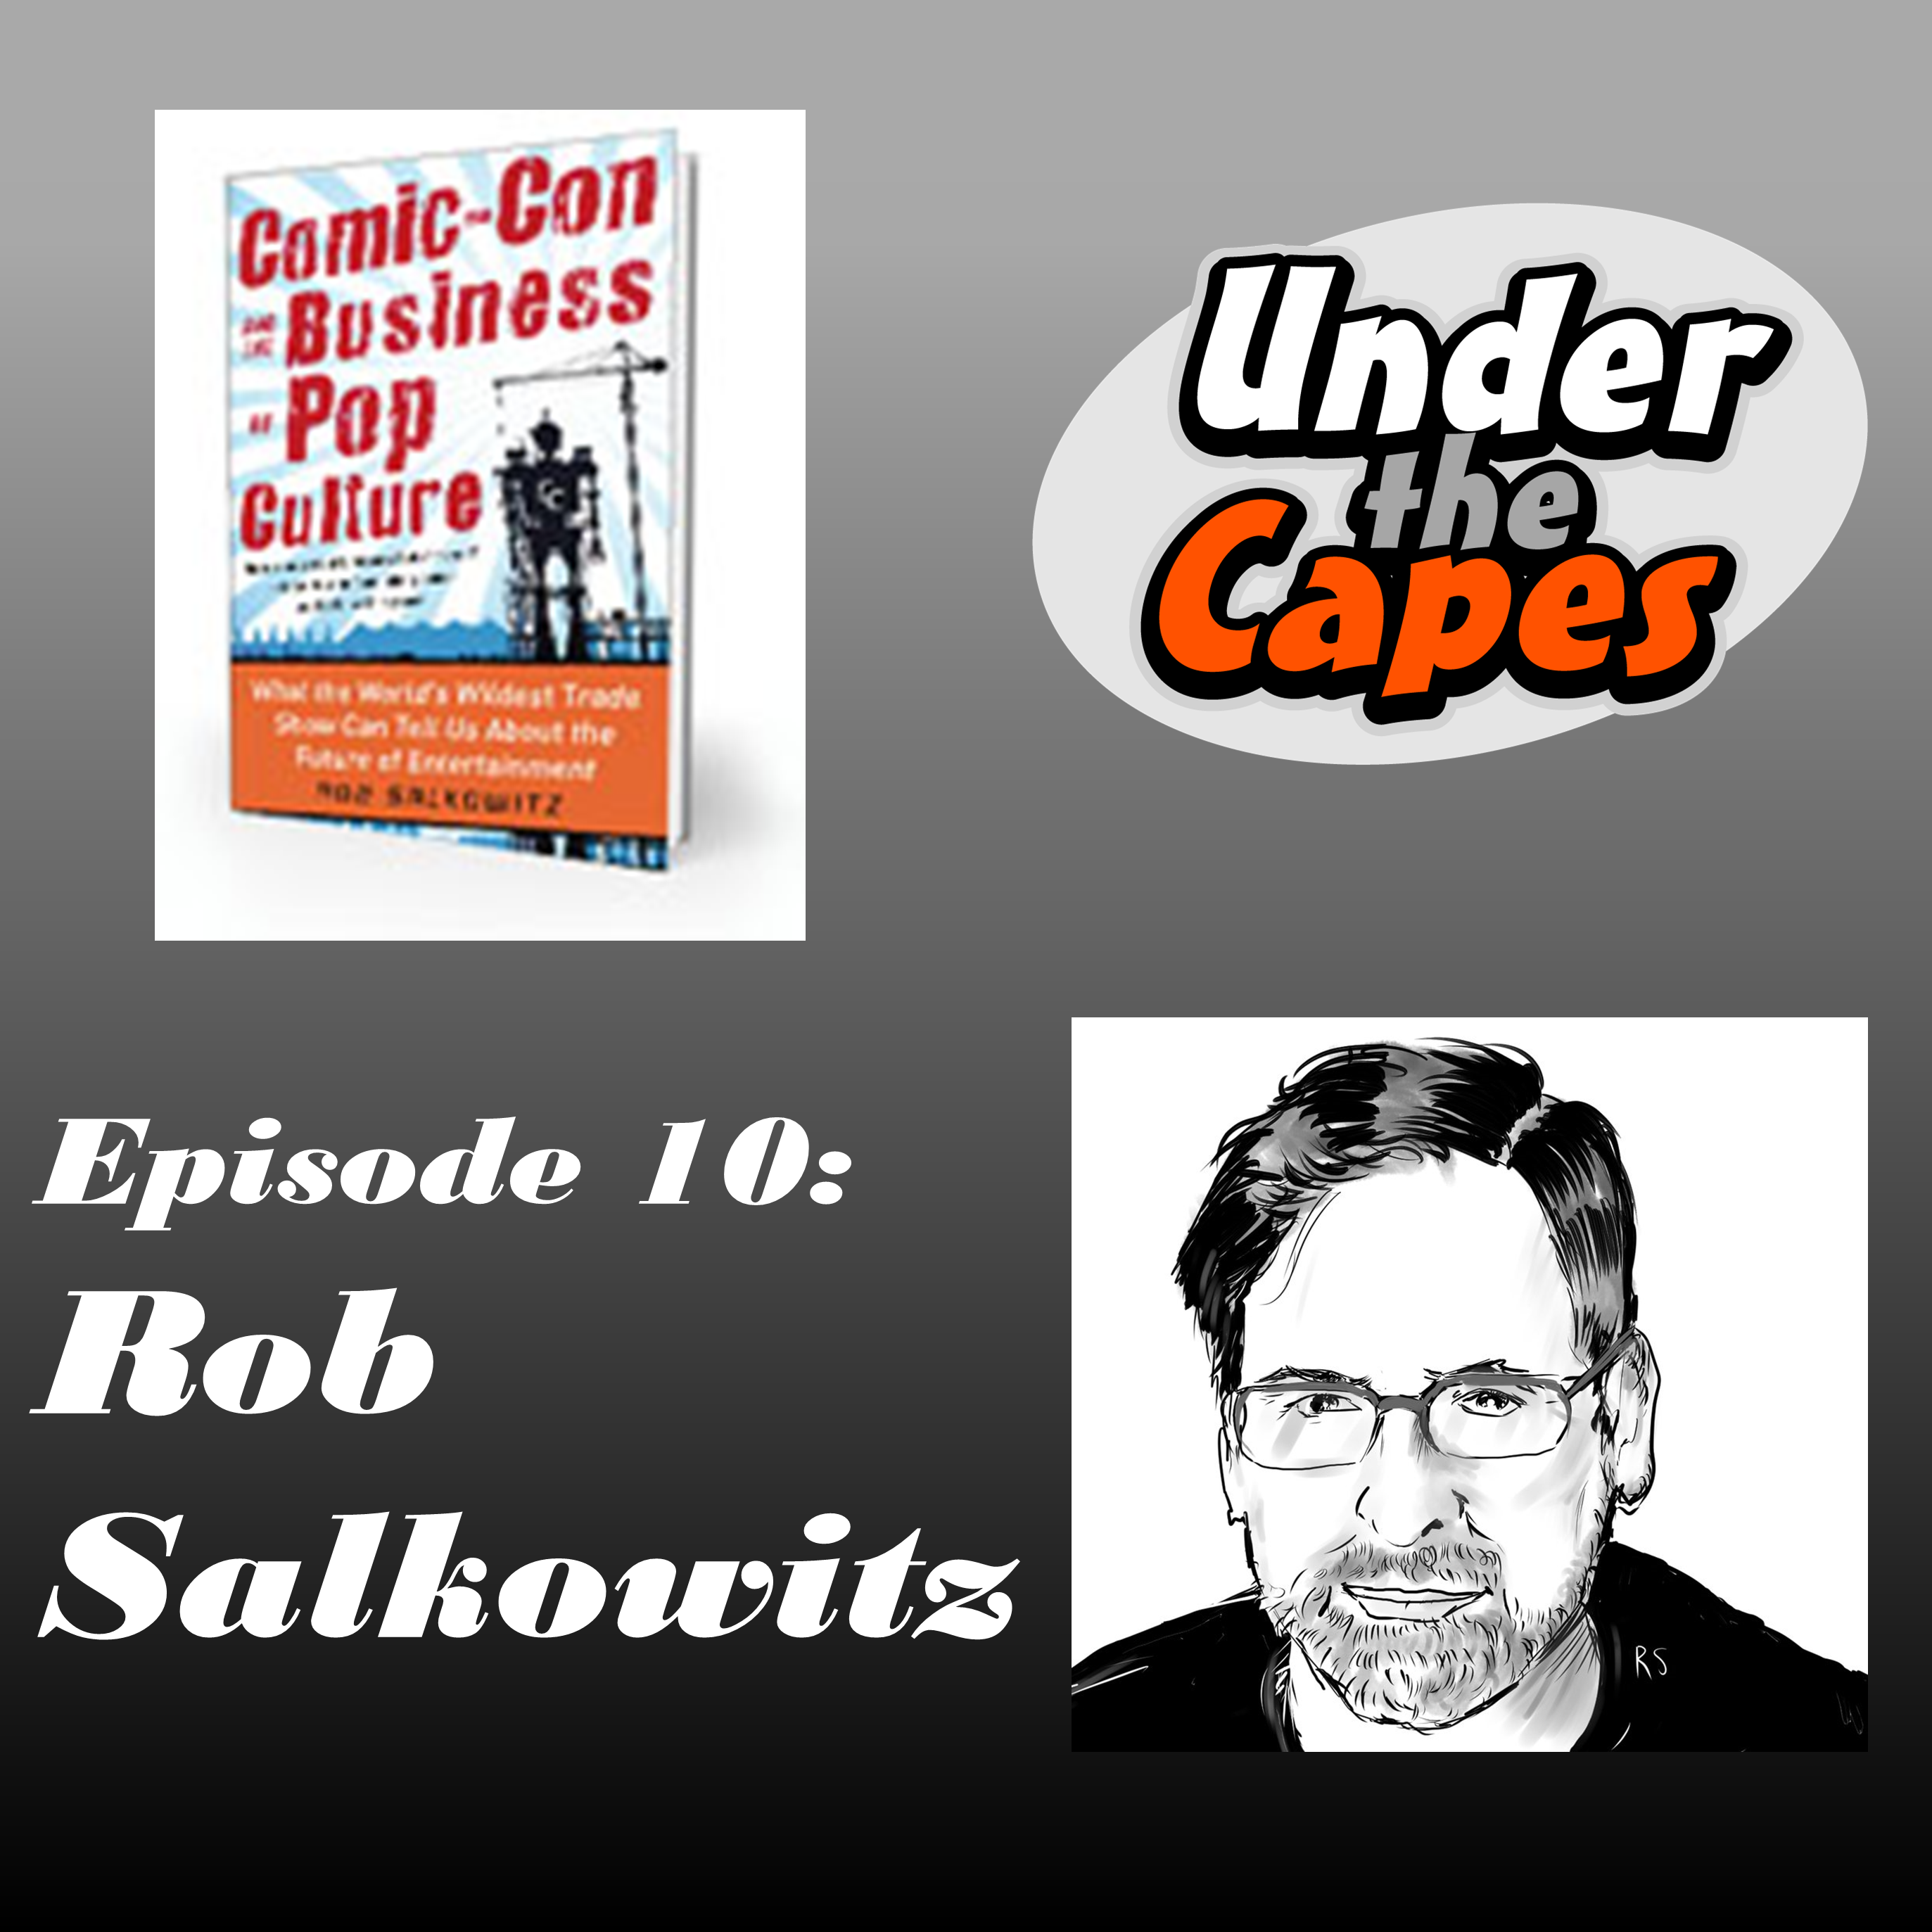 Episode 10: Rob Salkowitz